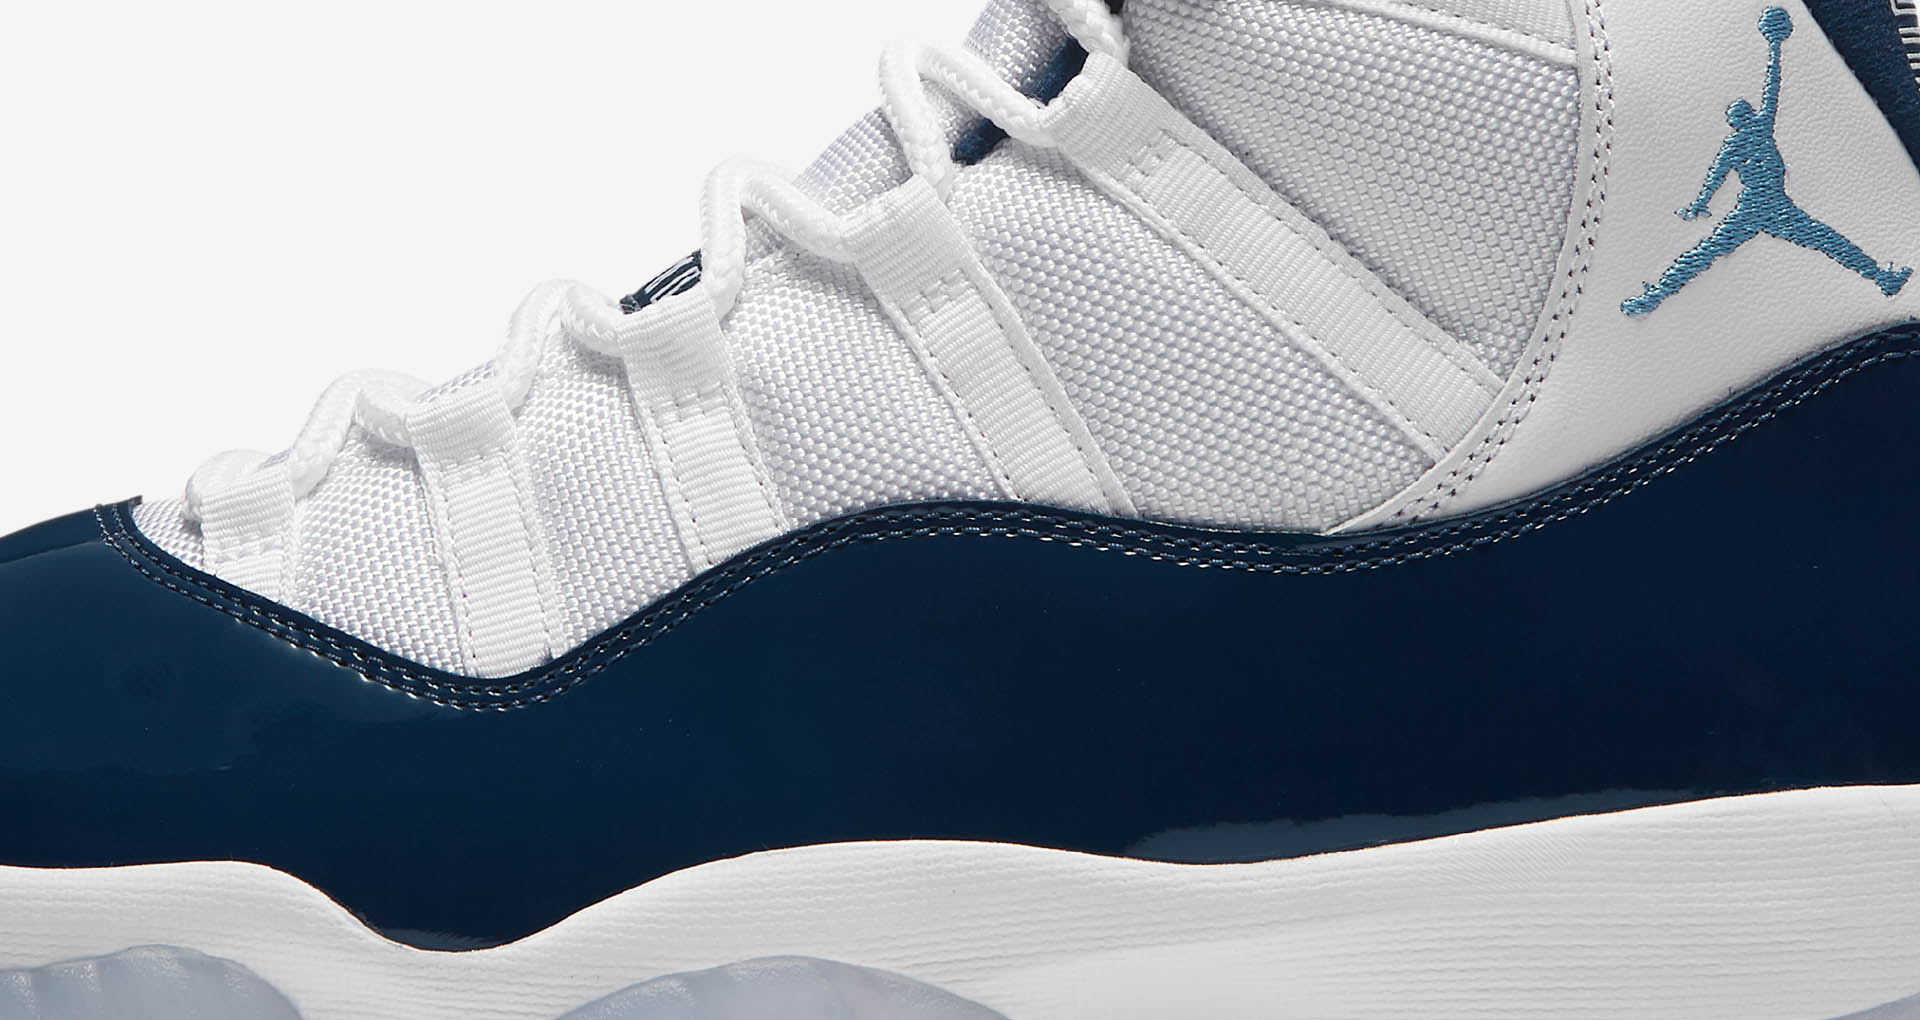 nike-air-jordan-11-midnight-navy-378037-123-release-20171111